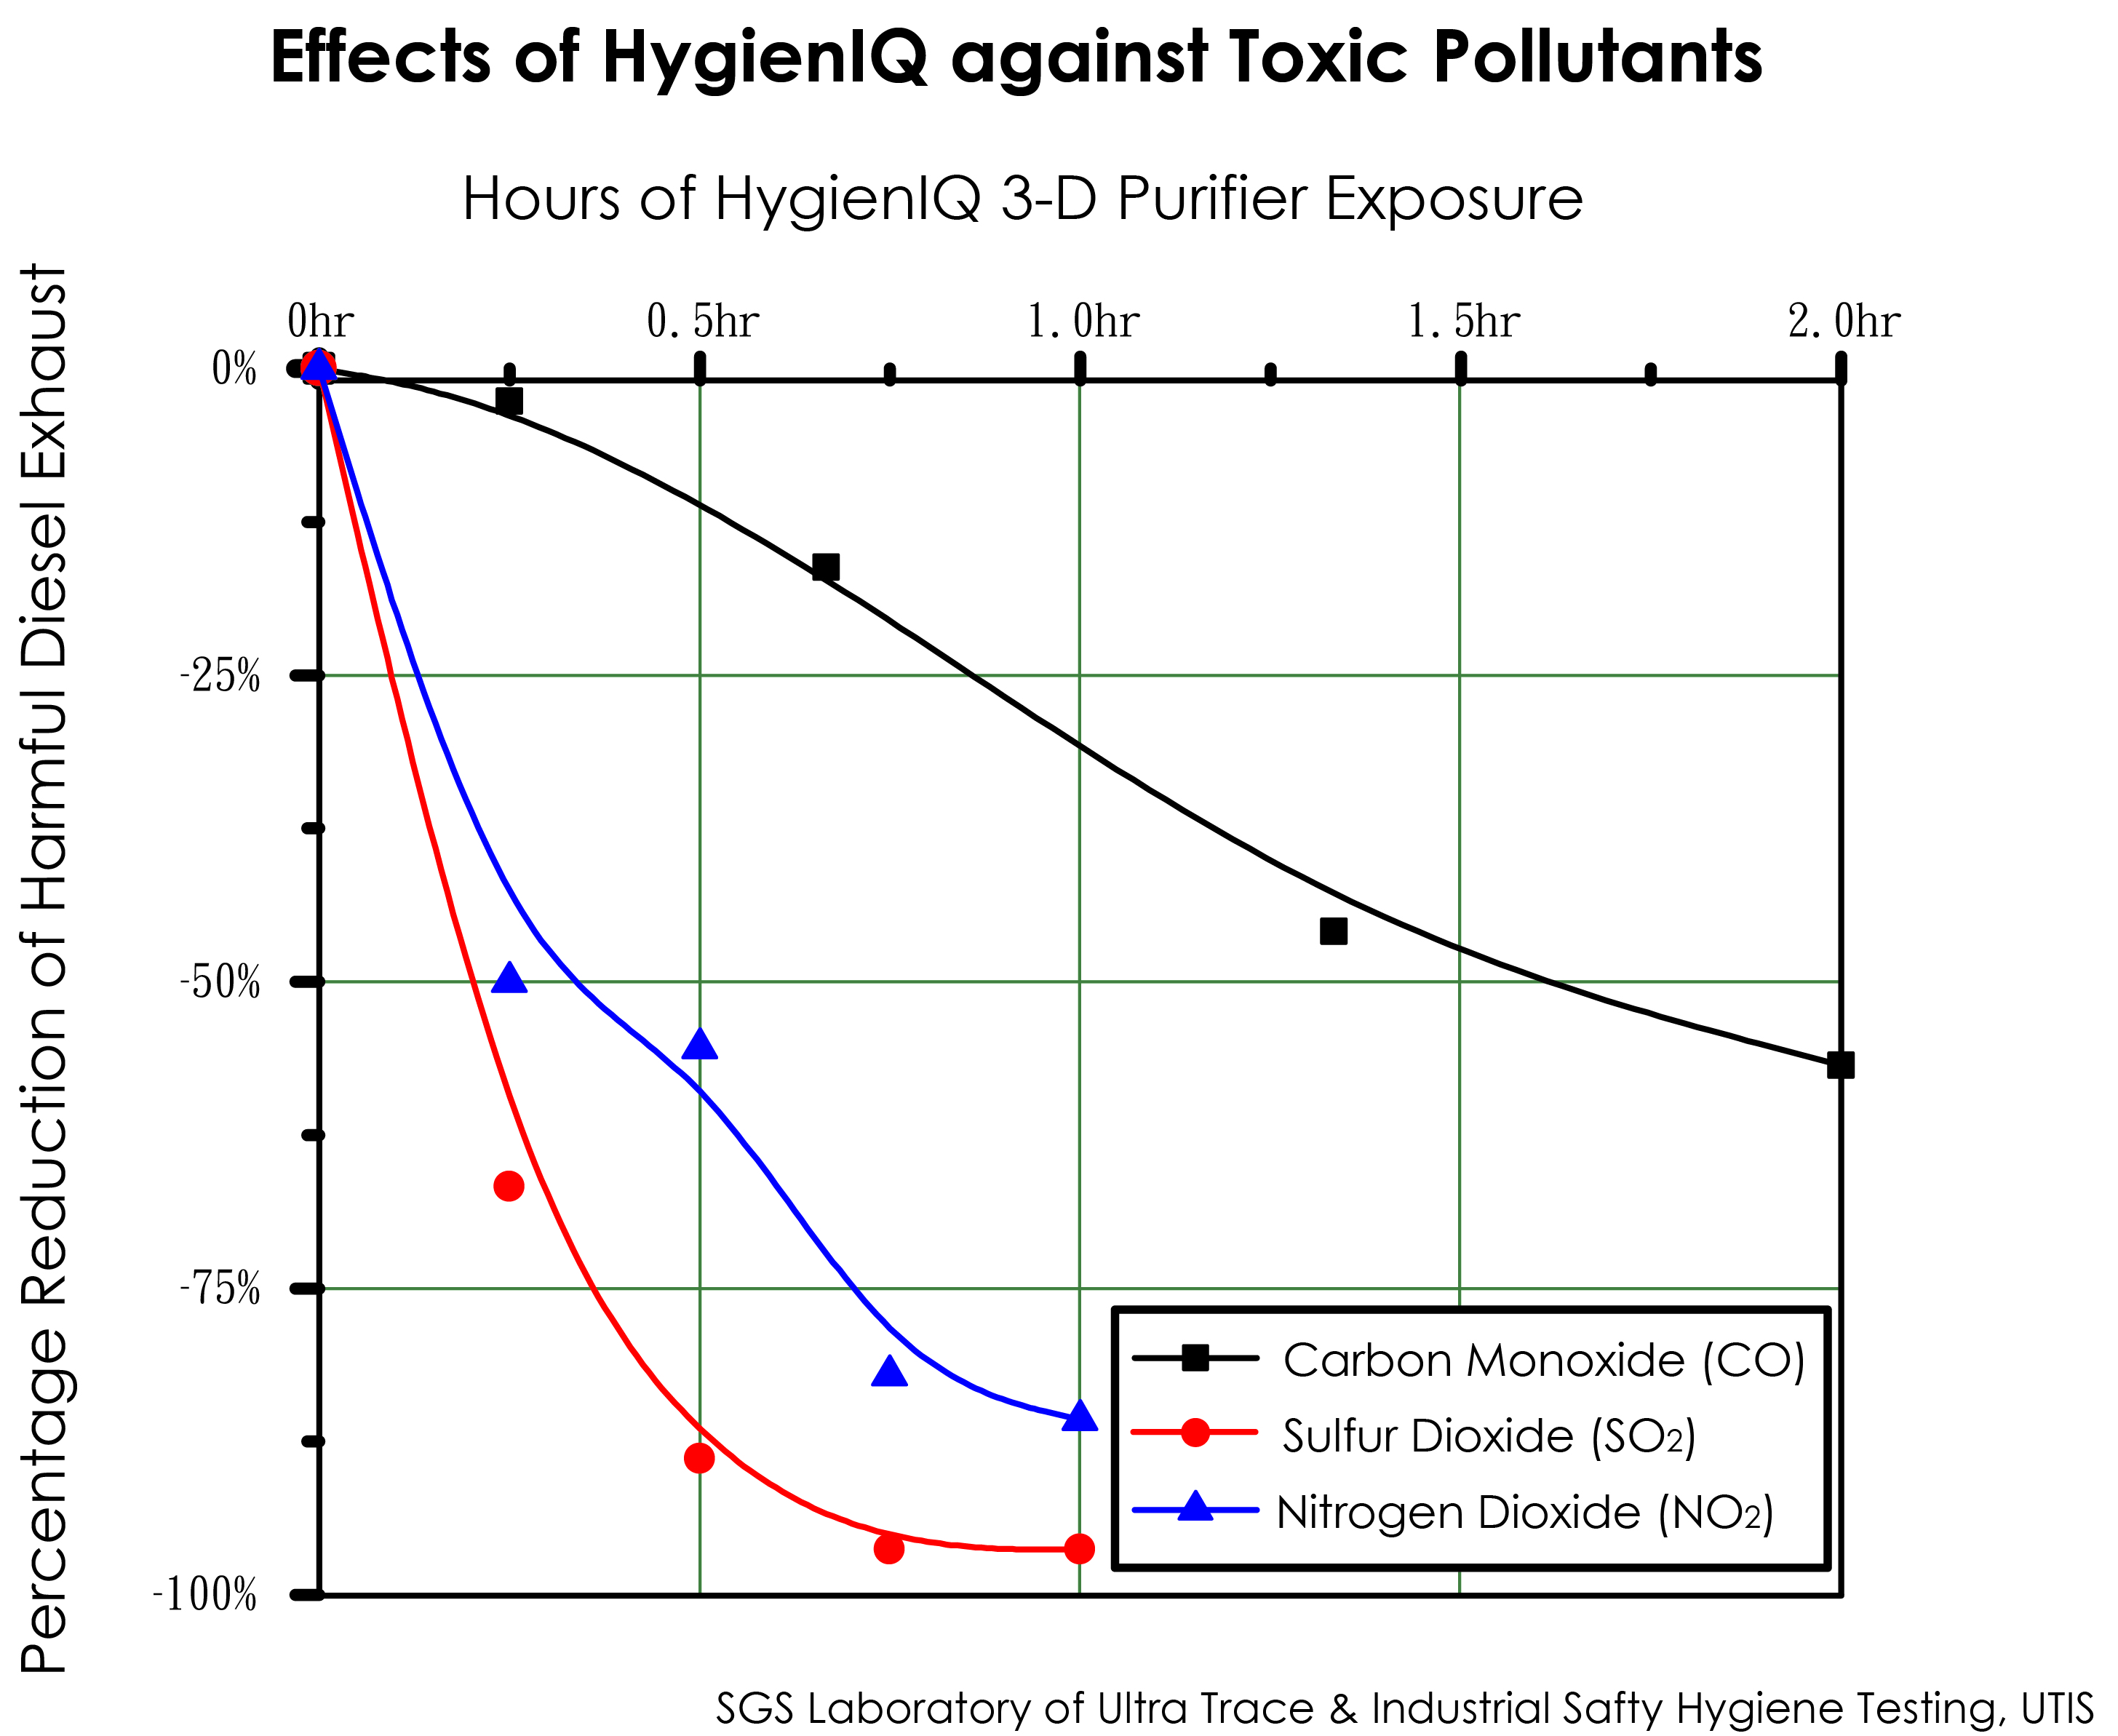 HygienIQ against toxic pollutants